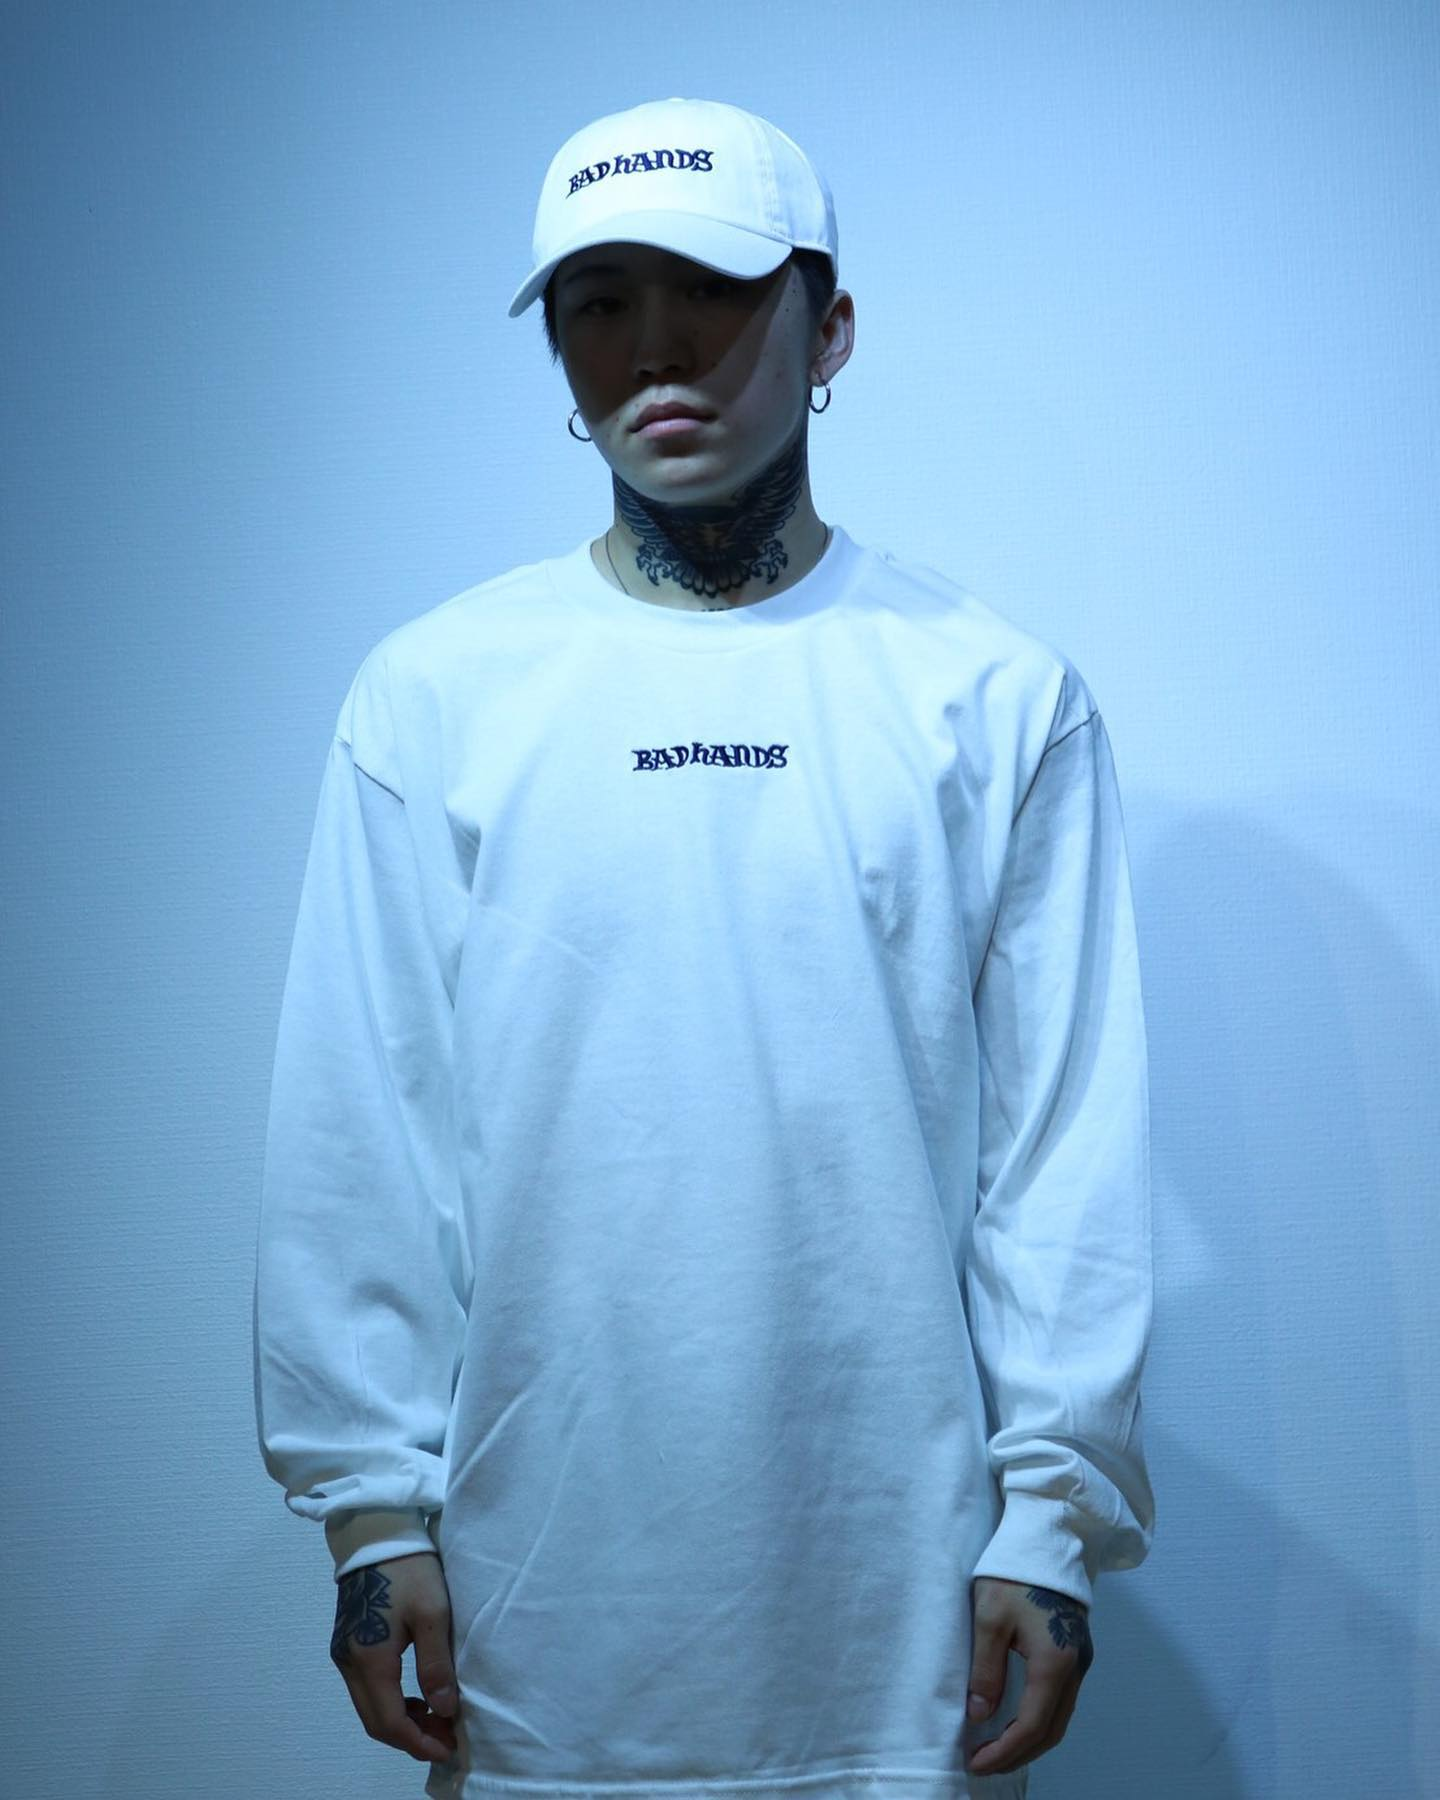 BAD HANDS 2020 L/S Whiteの写真